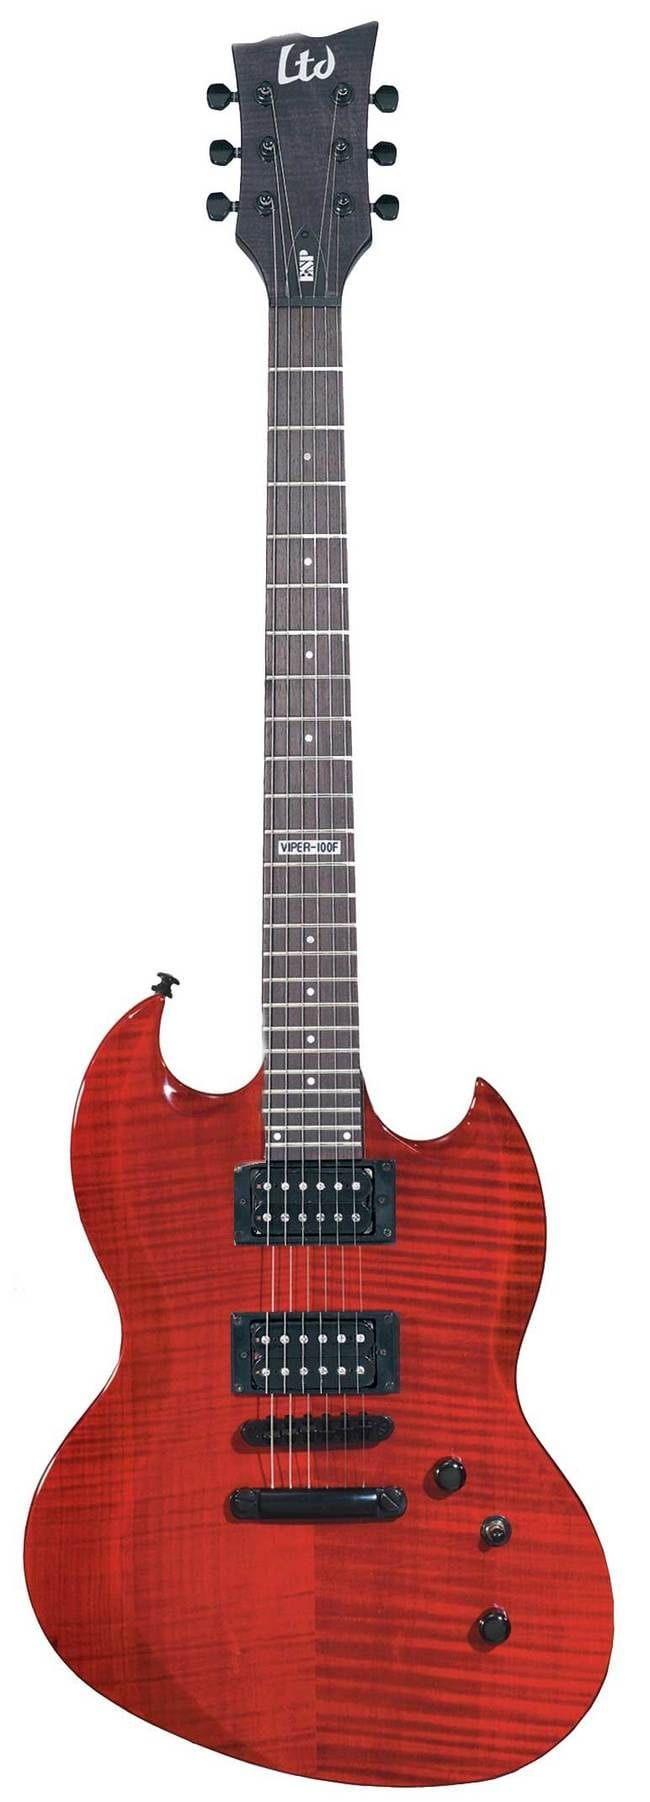 LTD VP-100 FM STBC VIPER FLAME TOP